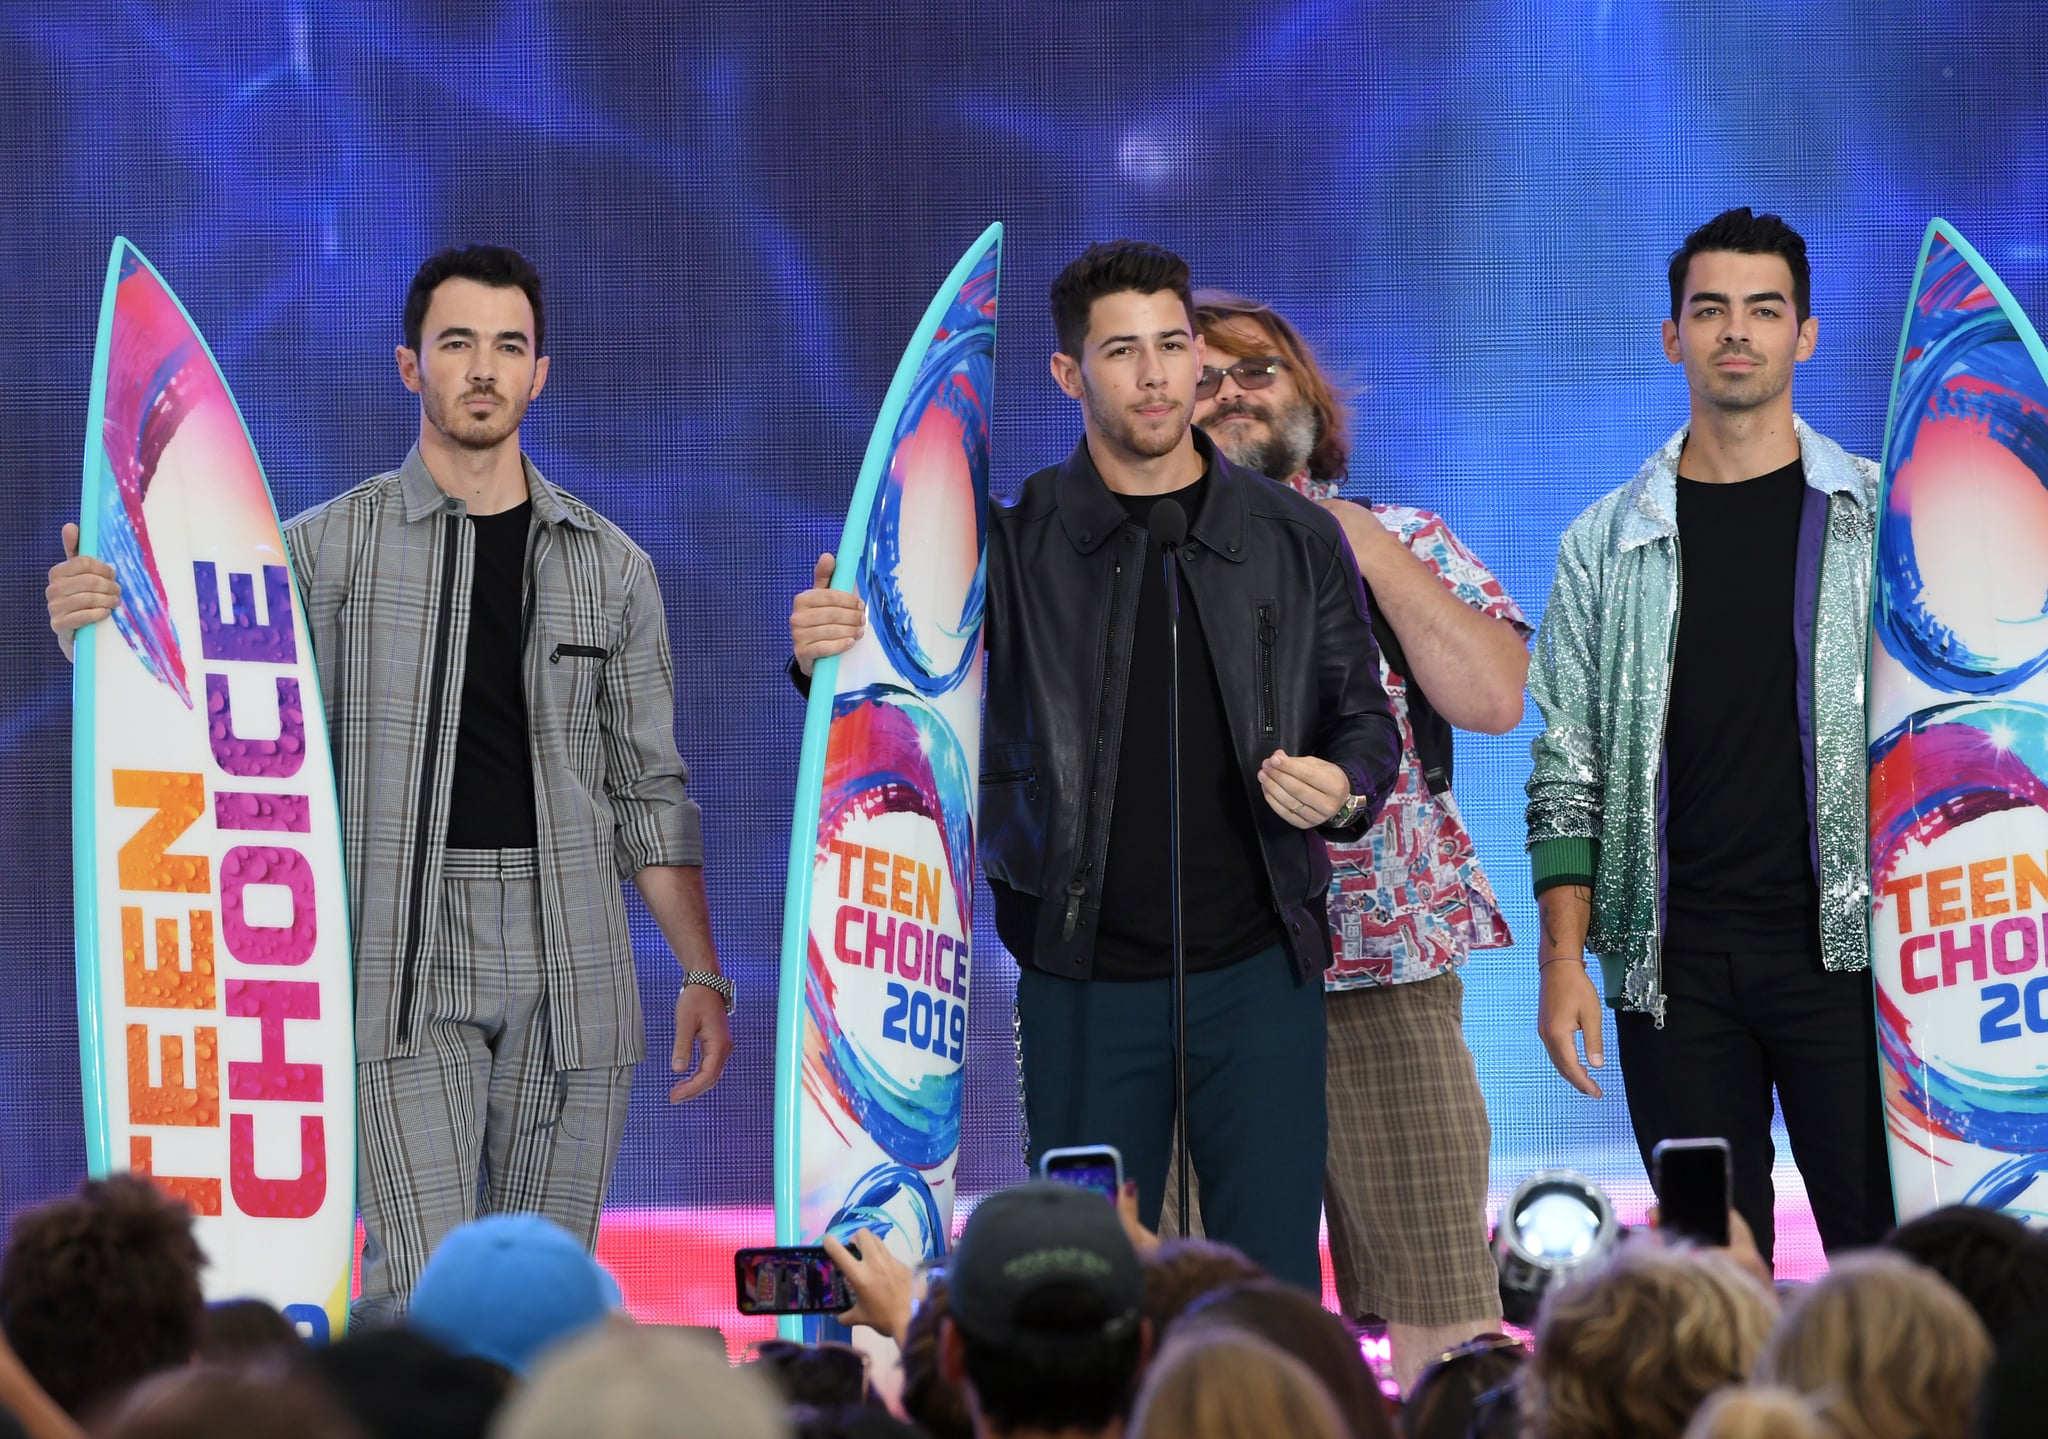 HERMOSA BEACH, CALIFORNIA - AUGUST 11: (L-R) Kevin Jonas, Nick Jonas and Joe Jonas of Jonas Brothers accept the Teen Choice Decade Award onstage during FOX's Teen Choice Awards 2019 on August 11, 2019 in Hermosa Beach, California. (Photo by Kevin Winter/Getty Images)